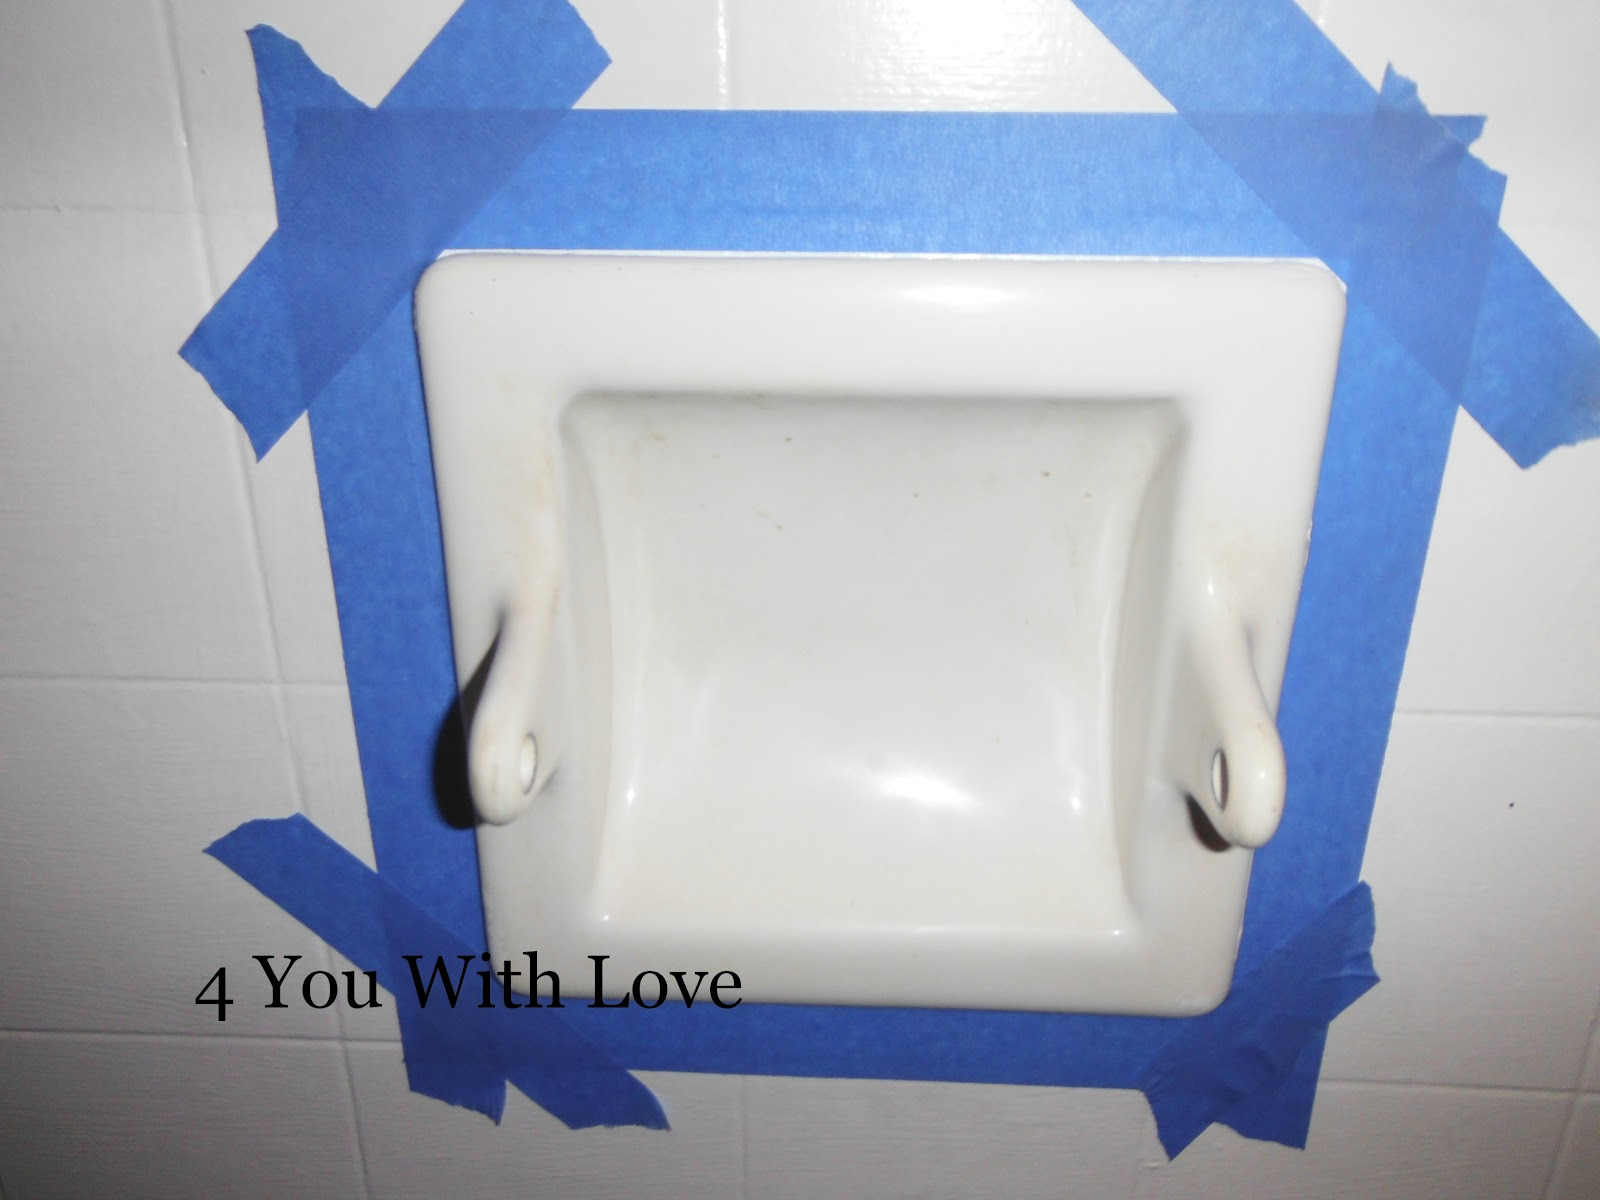 Painting Porcelain Bathroom Fixtures 4 You With Love. Can You Spray ...